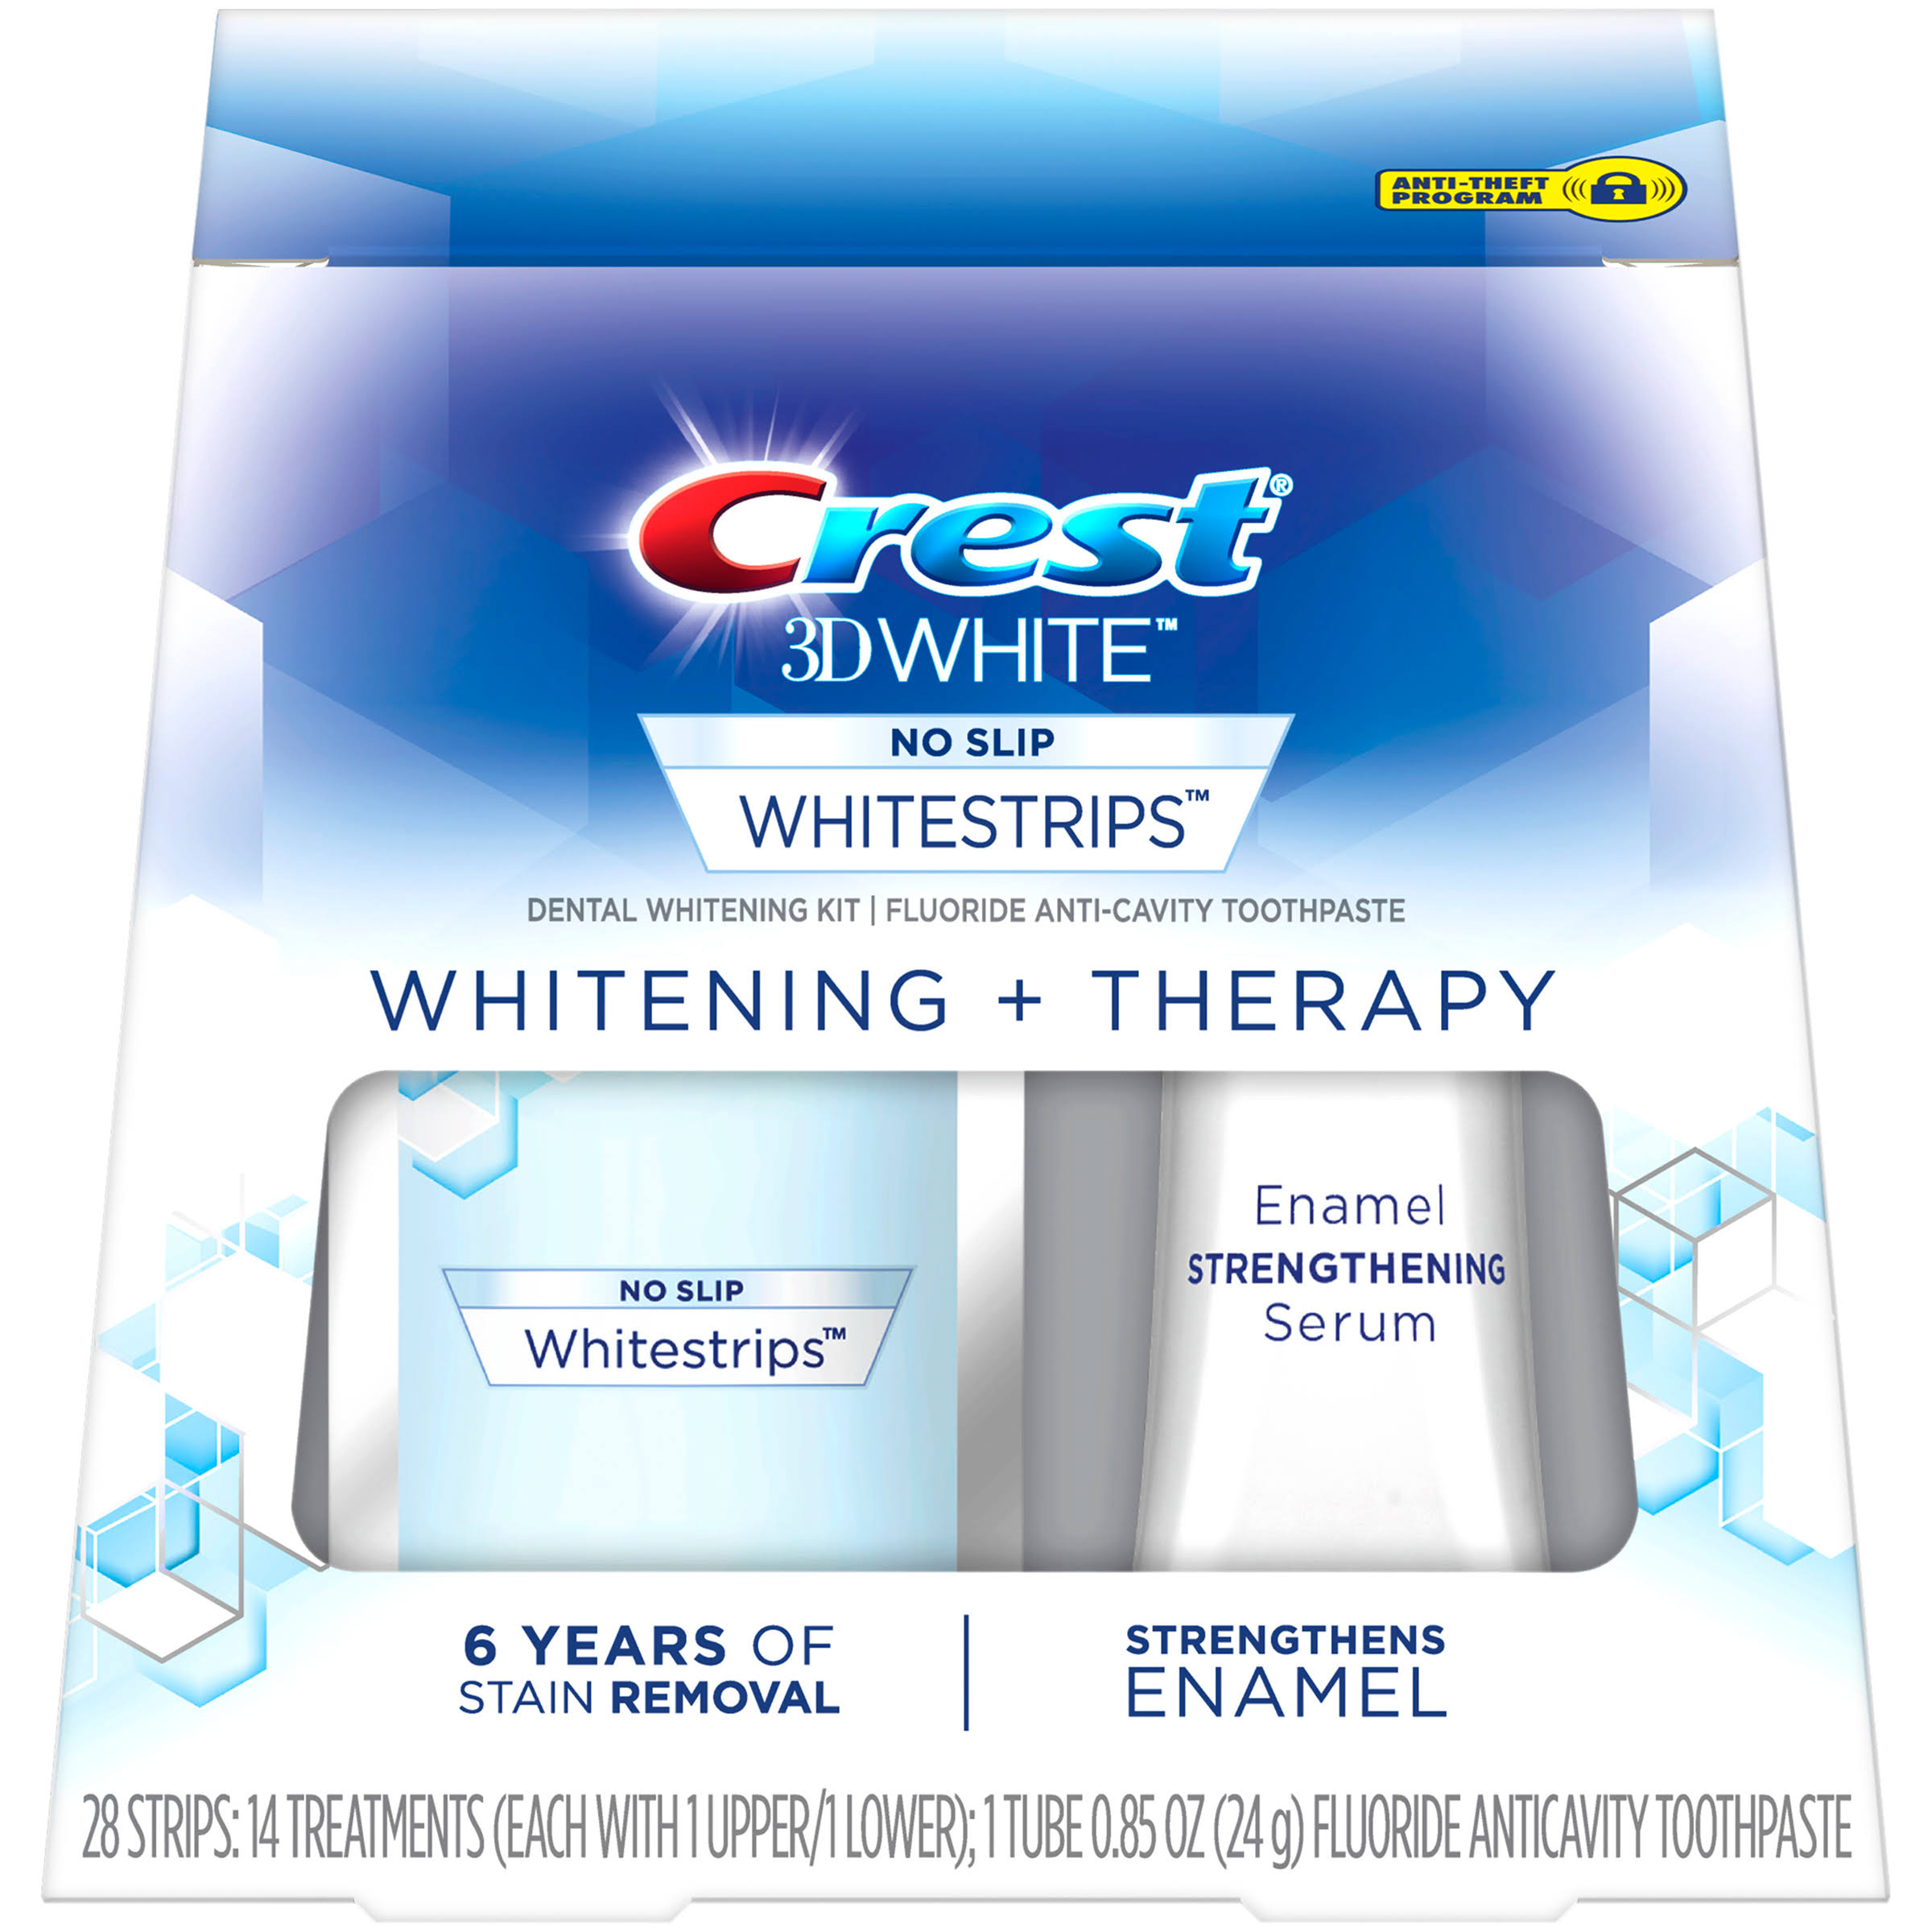 Crest 3D White Whitestrips Whitening + Therapy Teeth Whitening Kit - 14ct